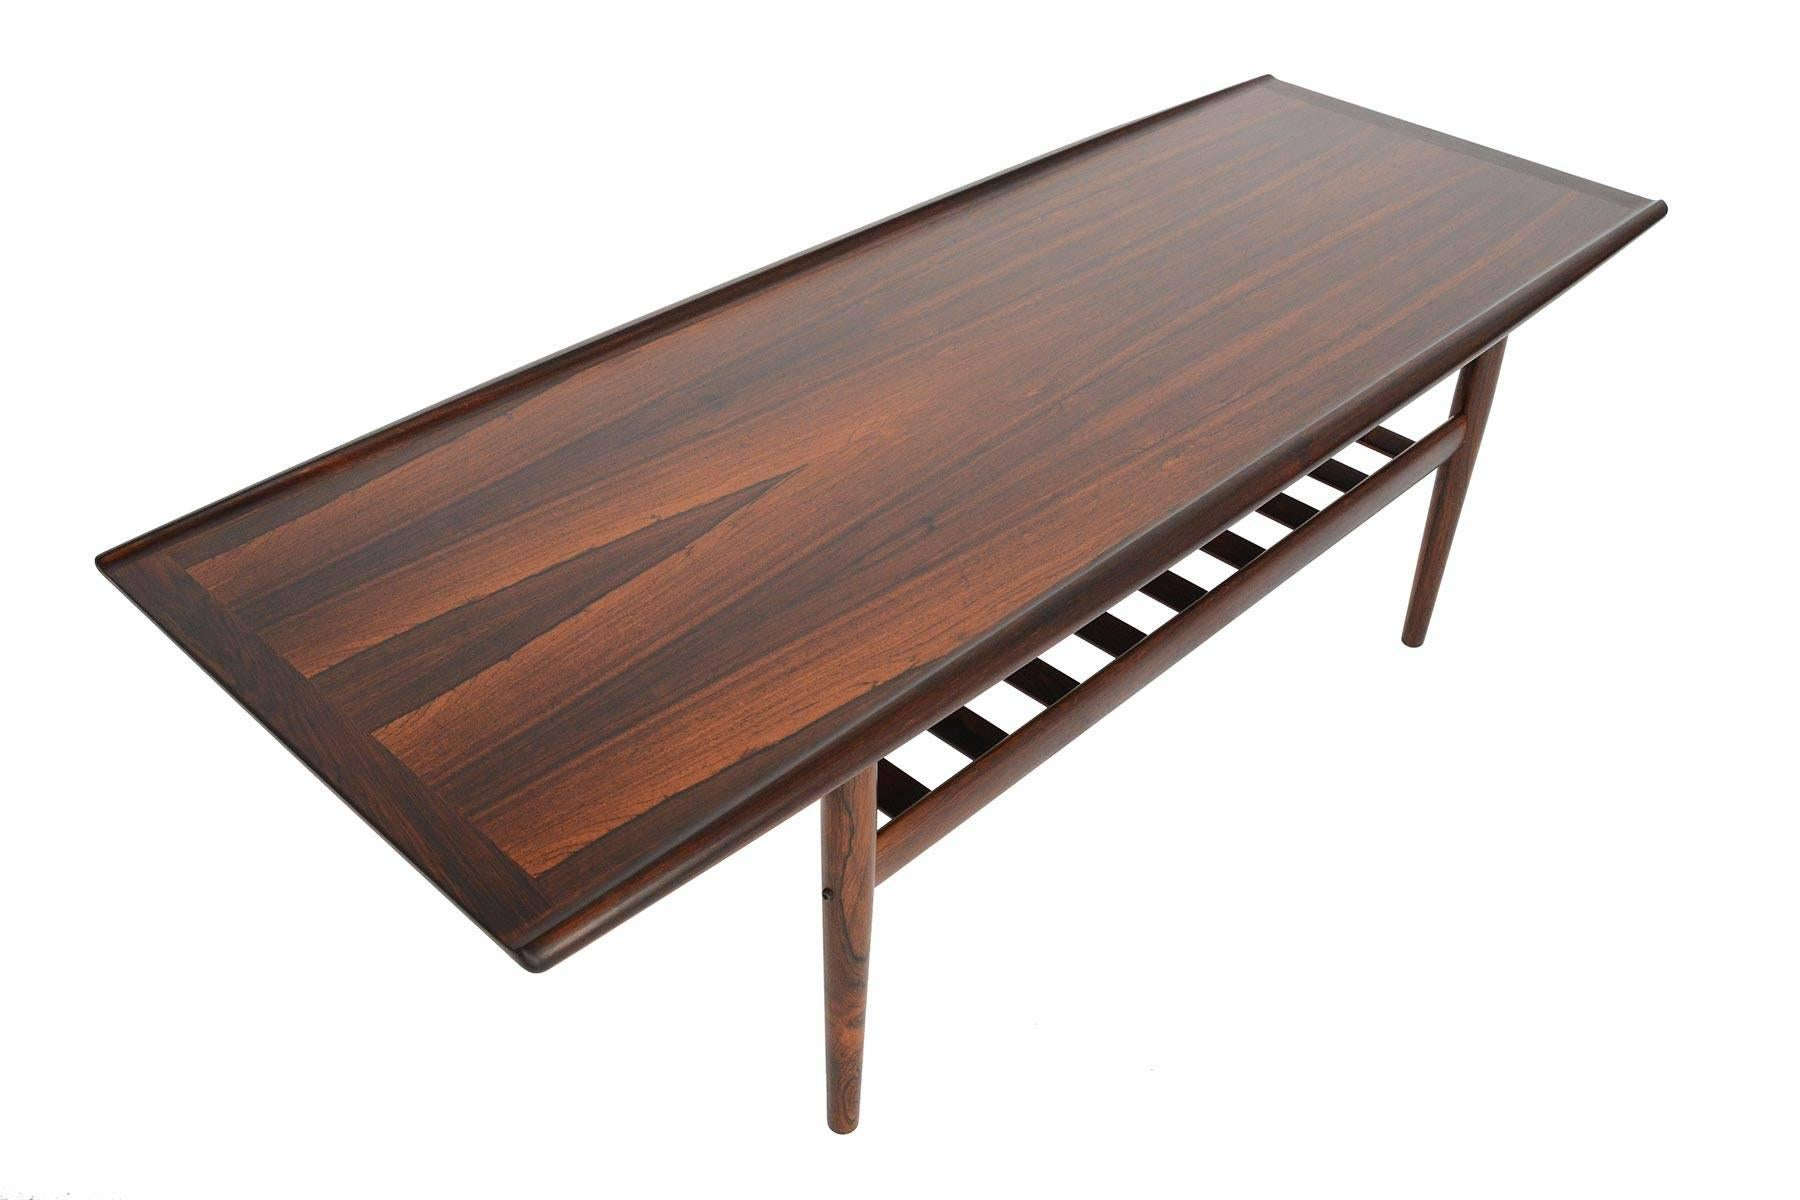 Charmant This Elegant Danish Modern Surfboard Coffee Table Was Designed By Grete Jalk  For Glostrup Mobelfabrik In